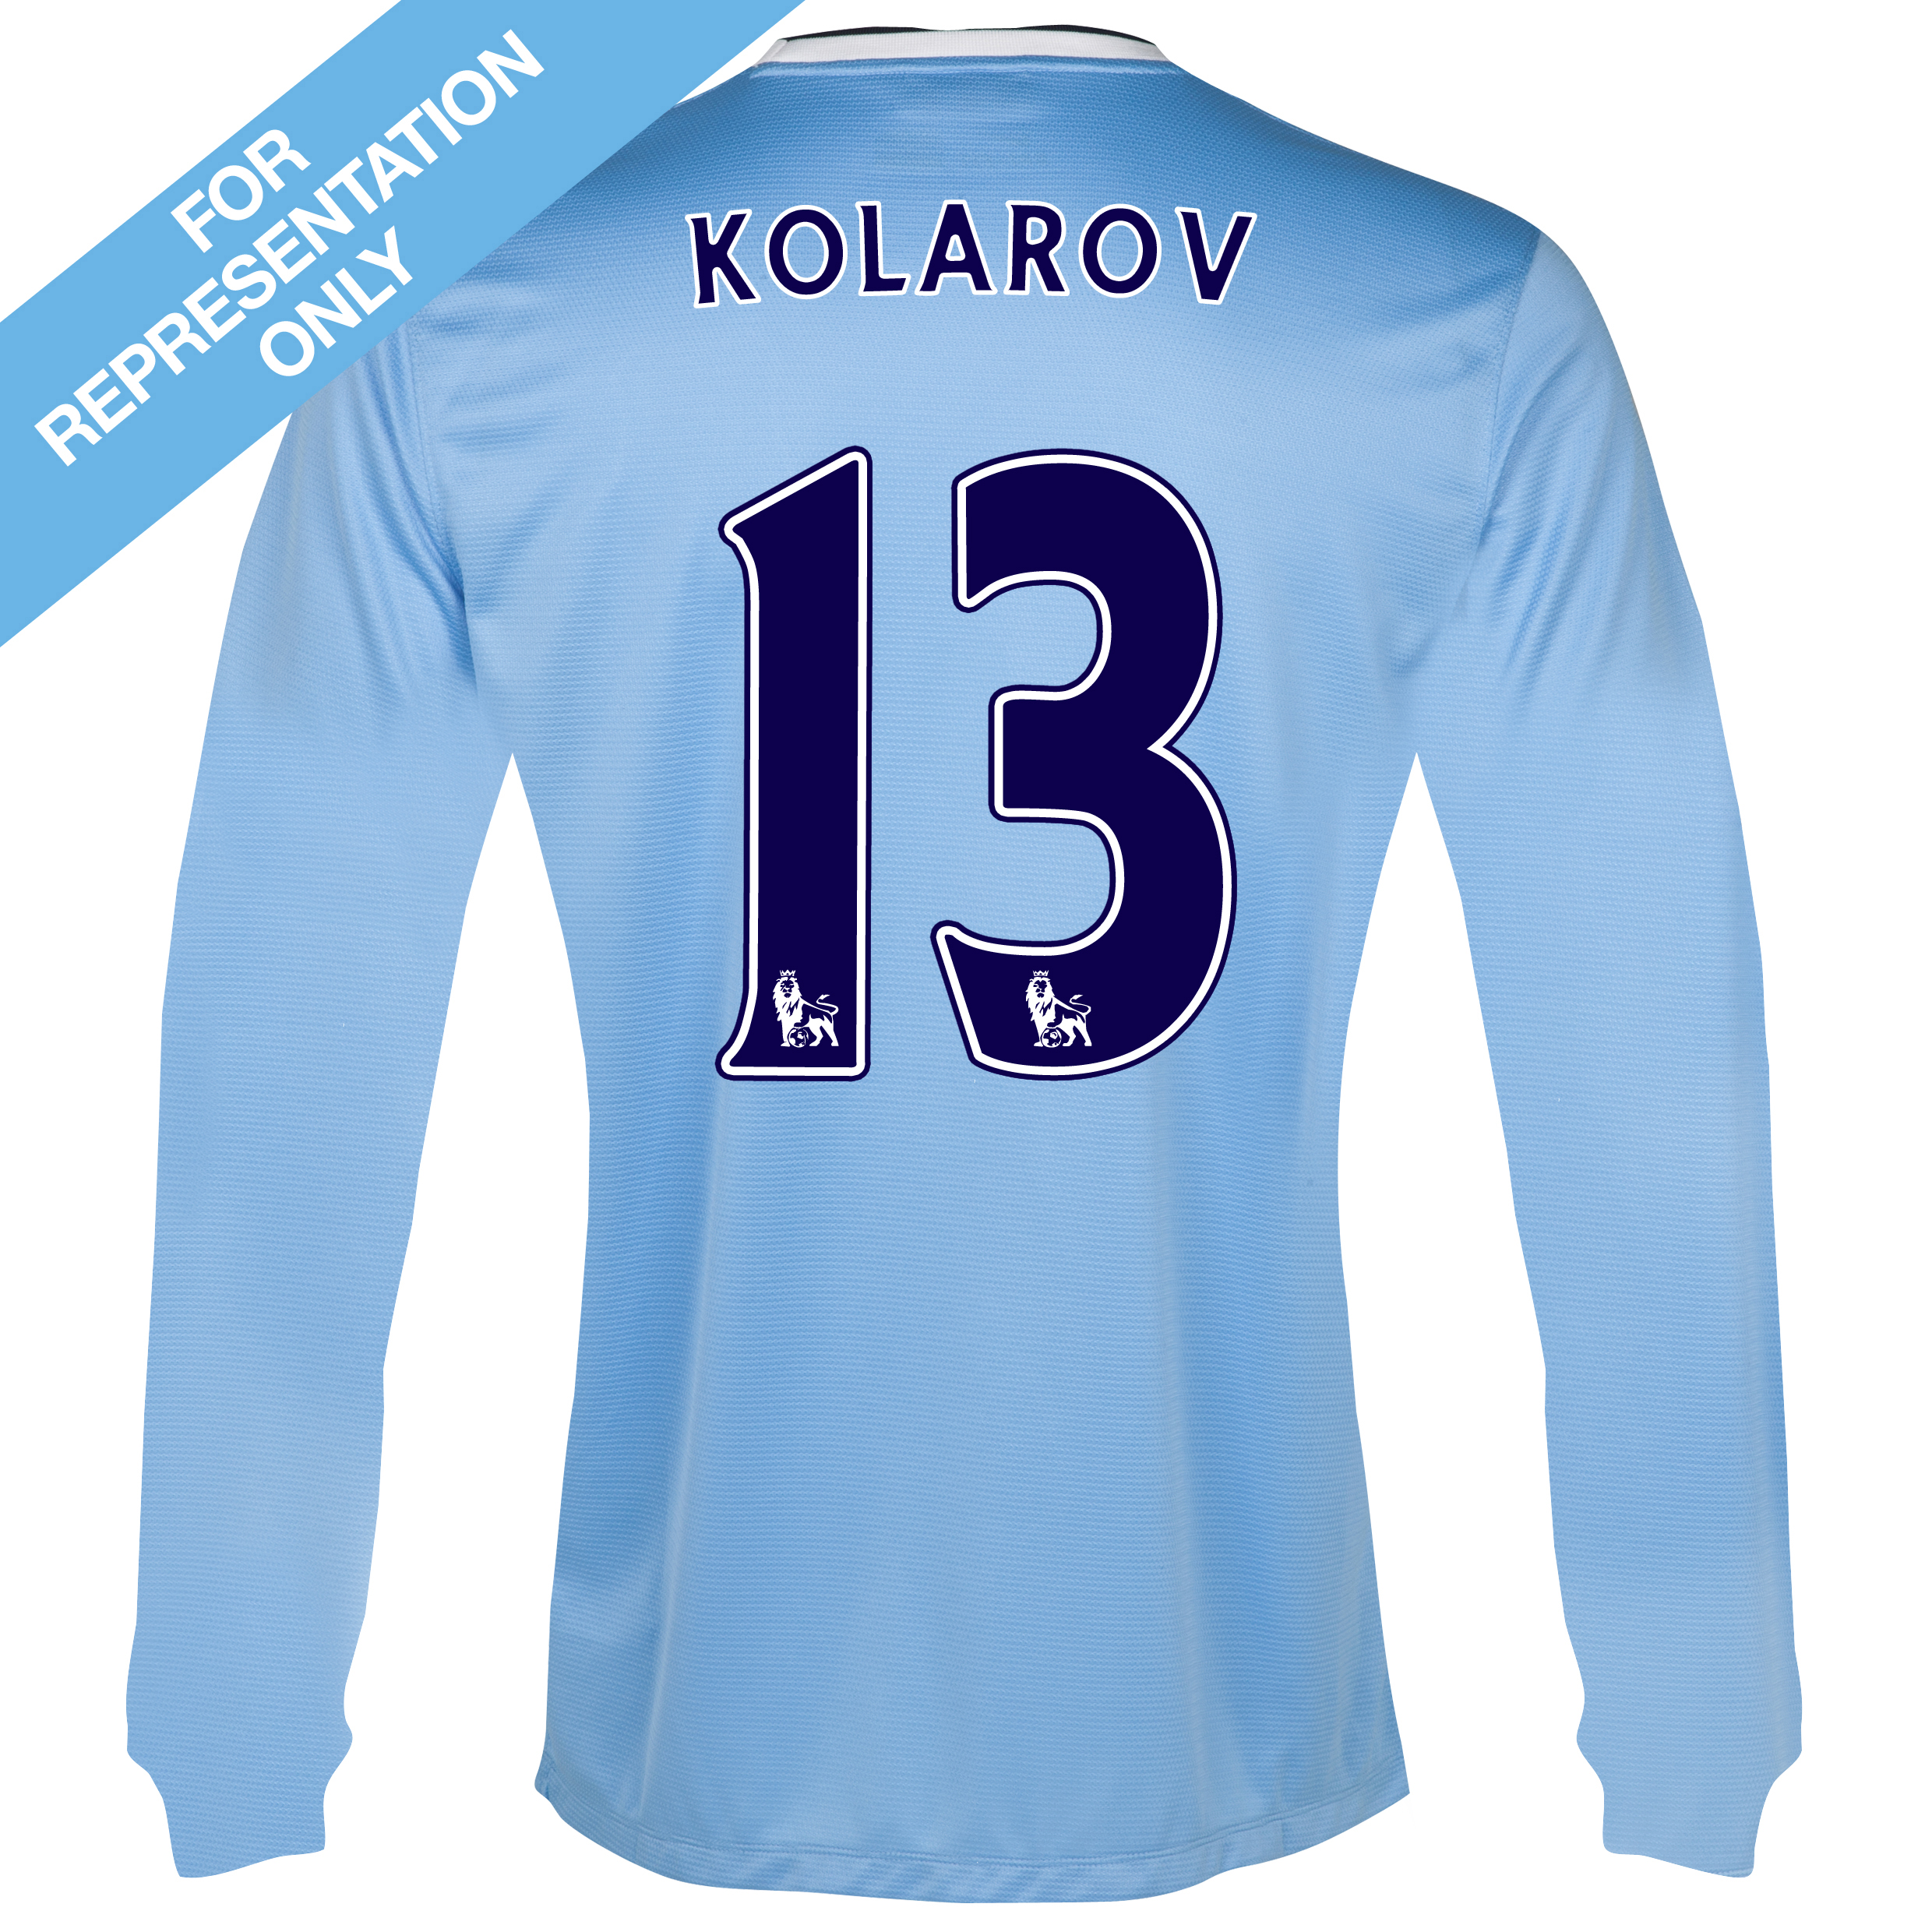 Manchester City Home Shirt 2013/14 - Long Sleeved - Junior with Kolarov 13 printing